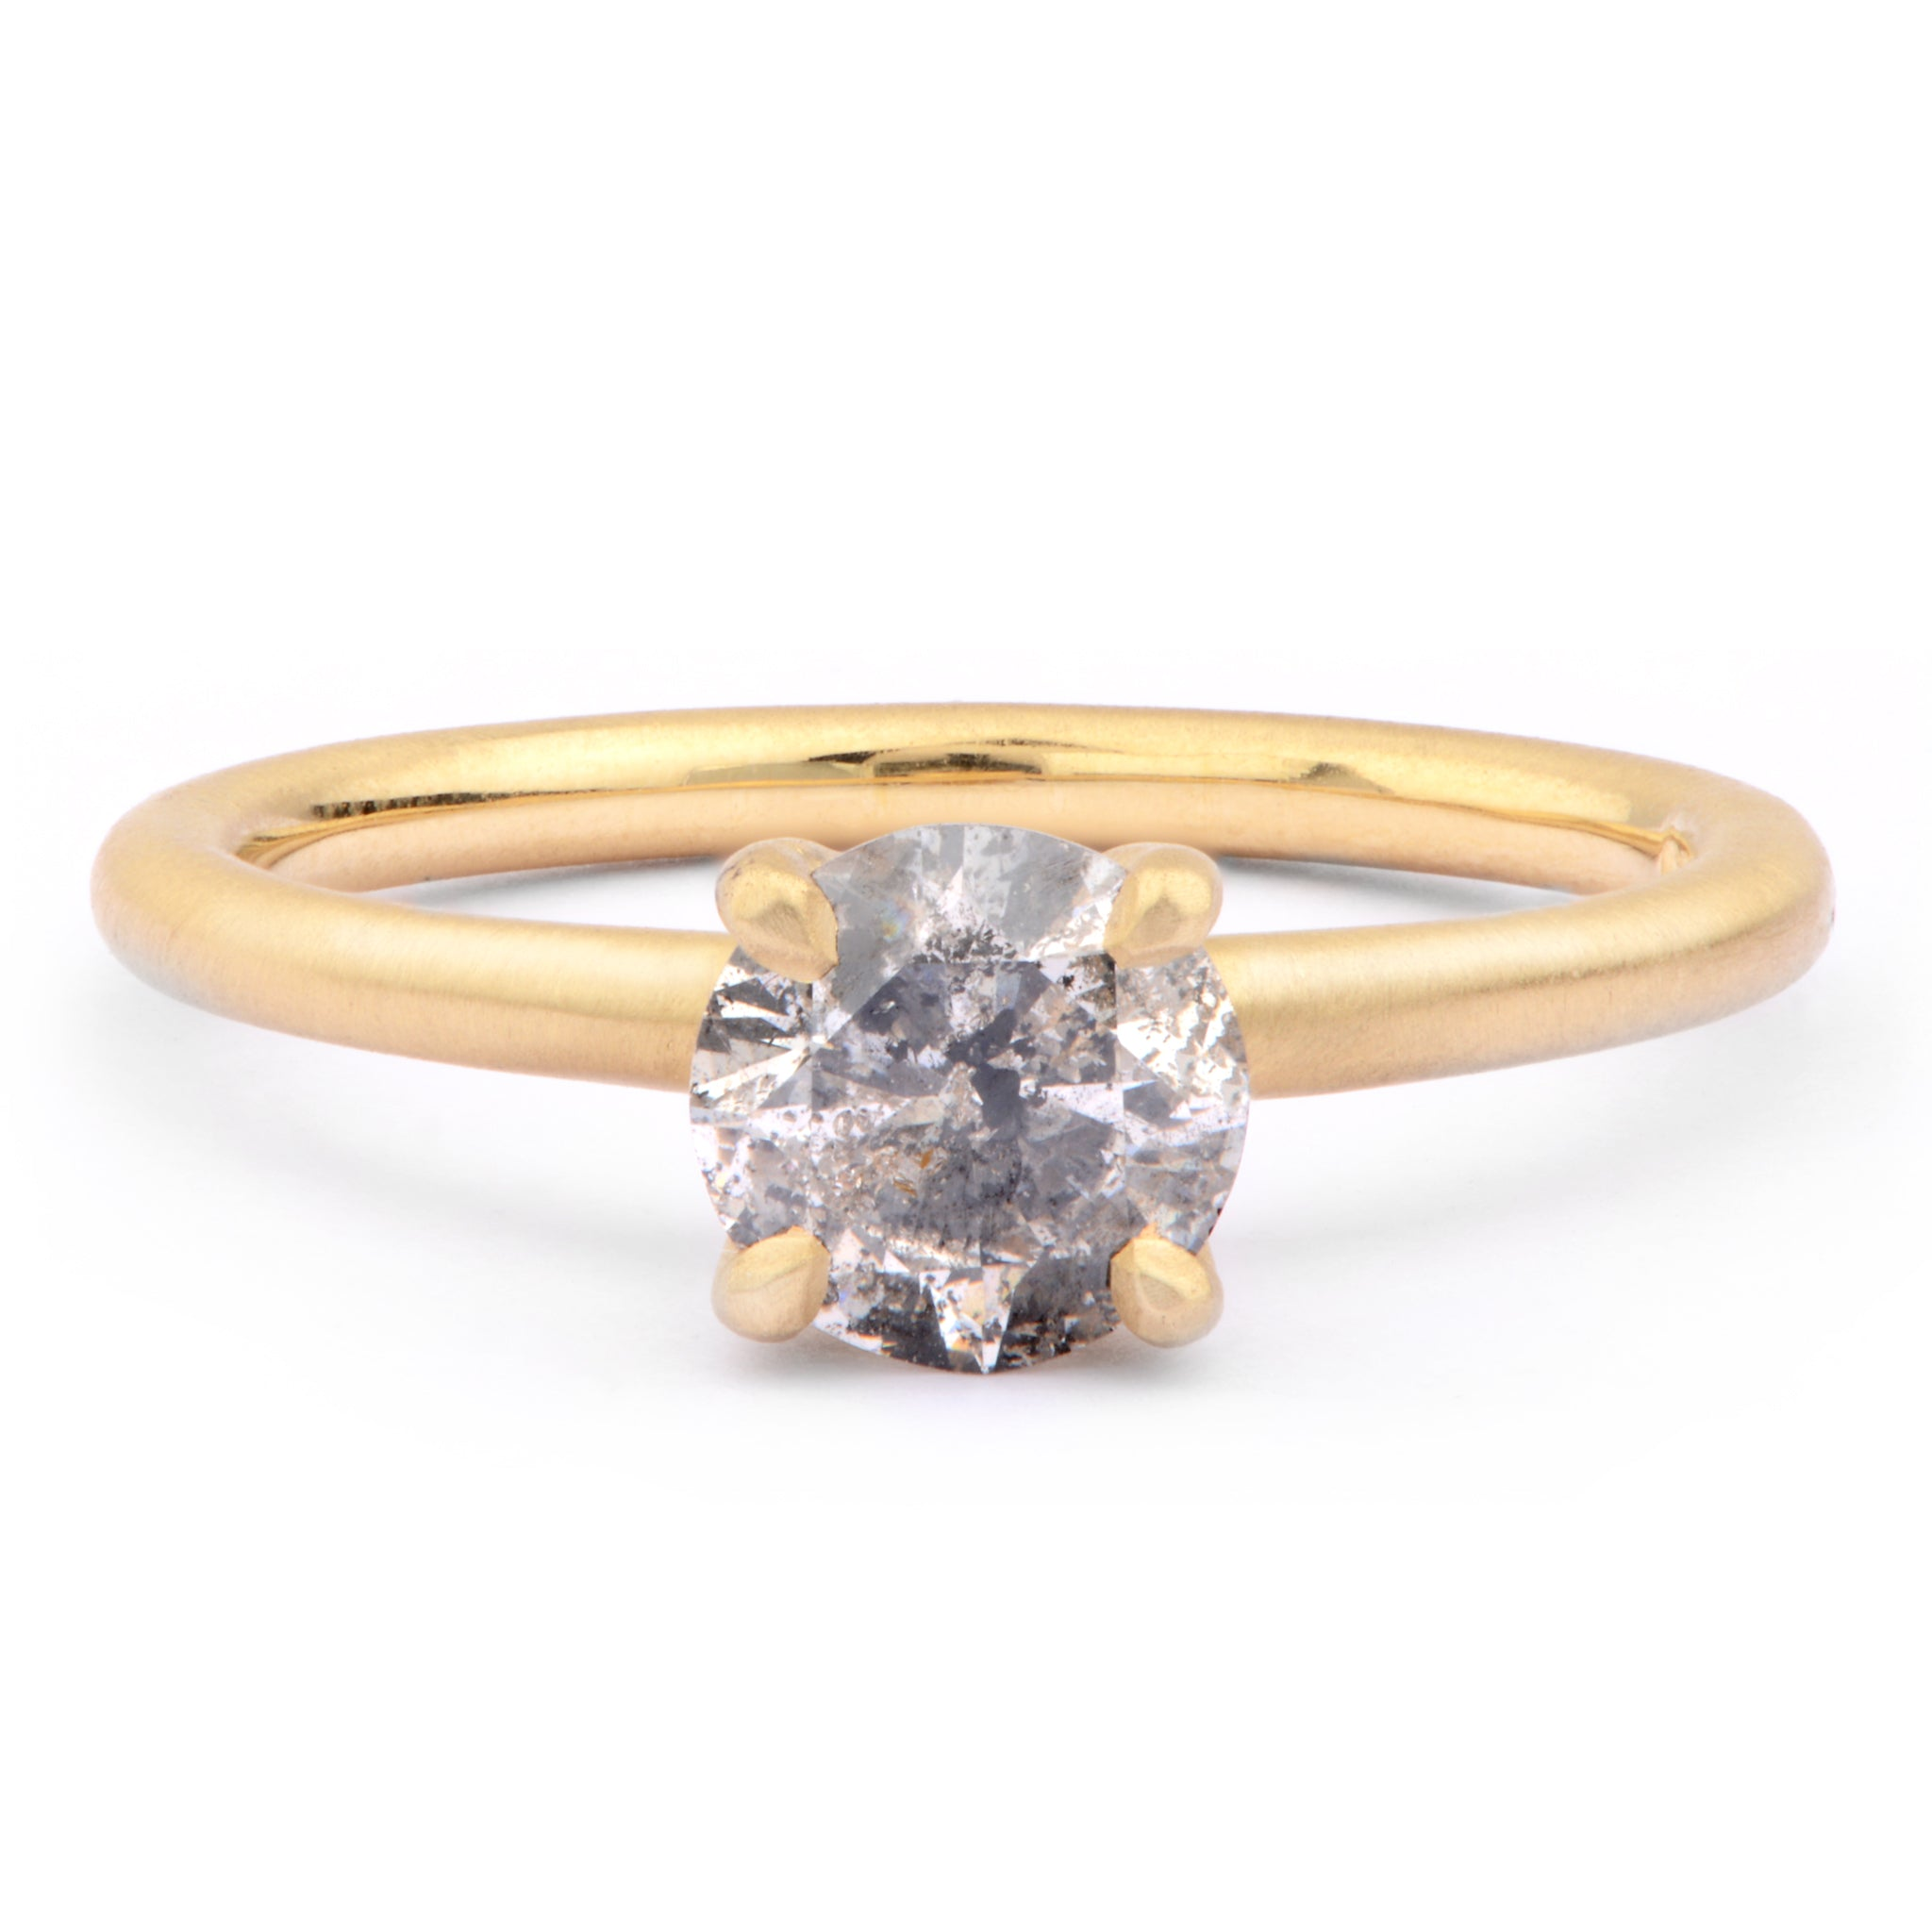 1ct Salt and Pepper Diamond and 18ct Yellow Gold Engagement Ring - James Newman Jewellery